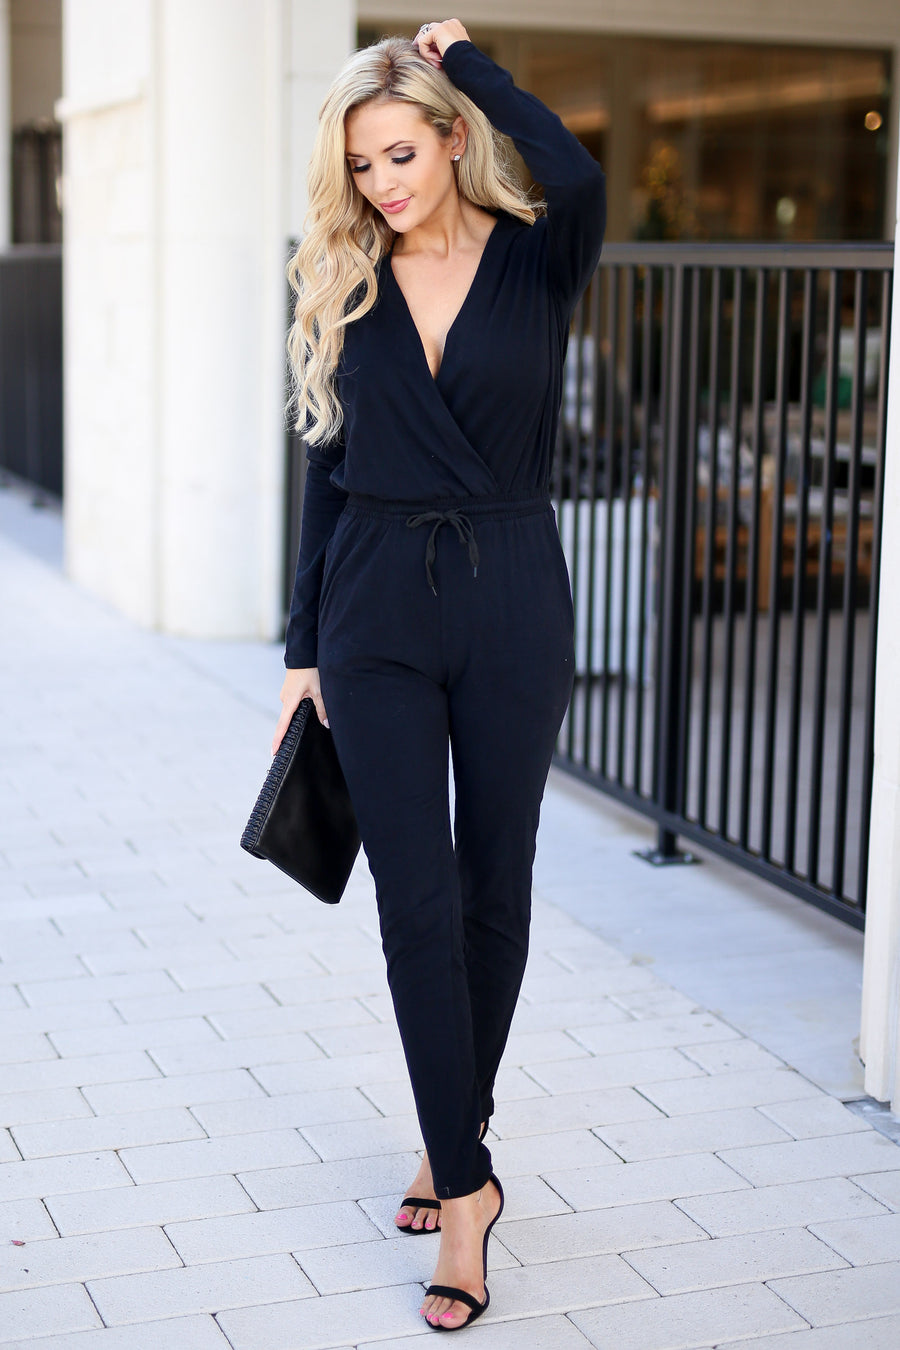 Building Empires Jumpsuit - Black long sleeve V-neck jumpsuit, elastic waistband, boss babe outfit, closet candy boutique 2